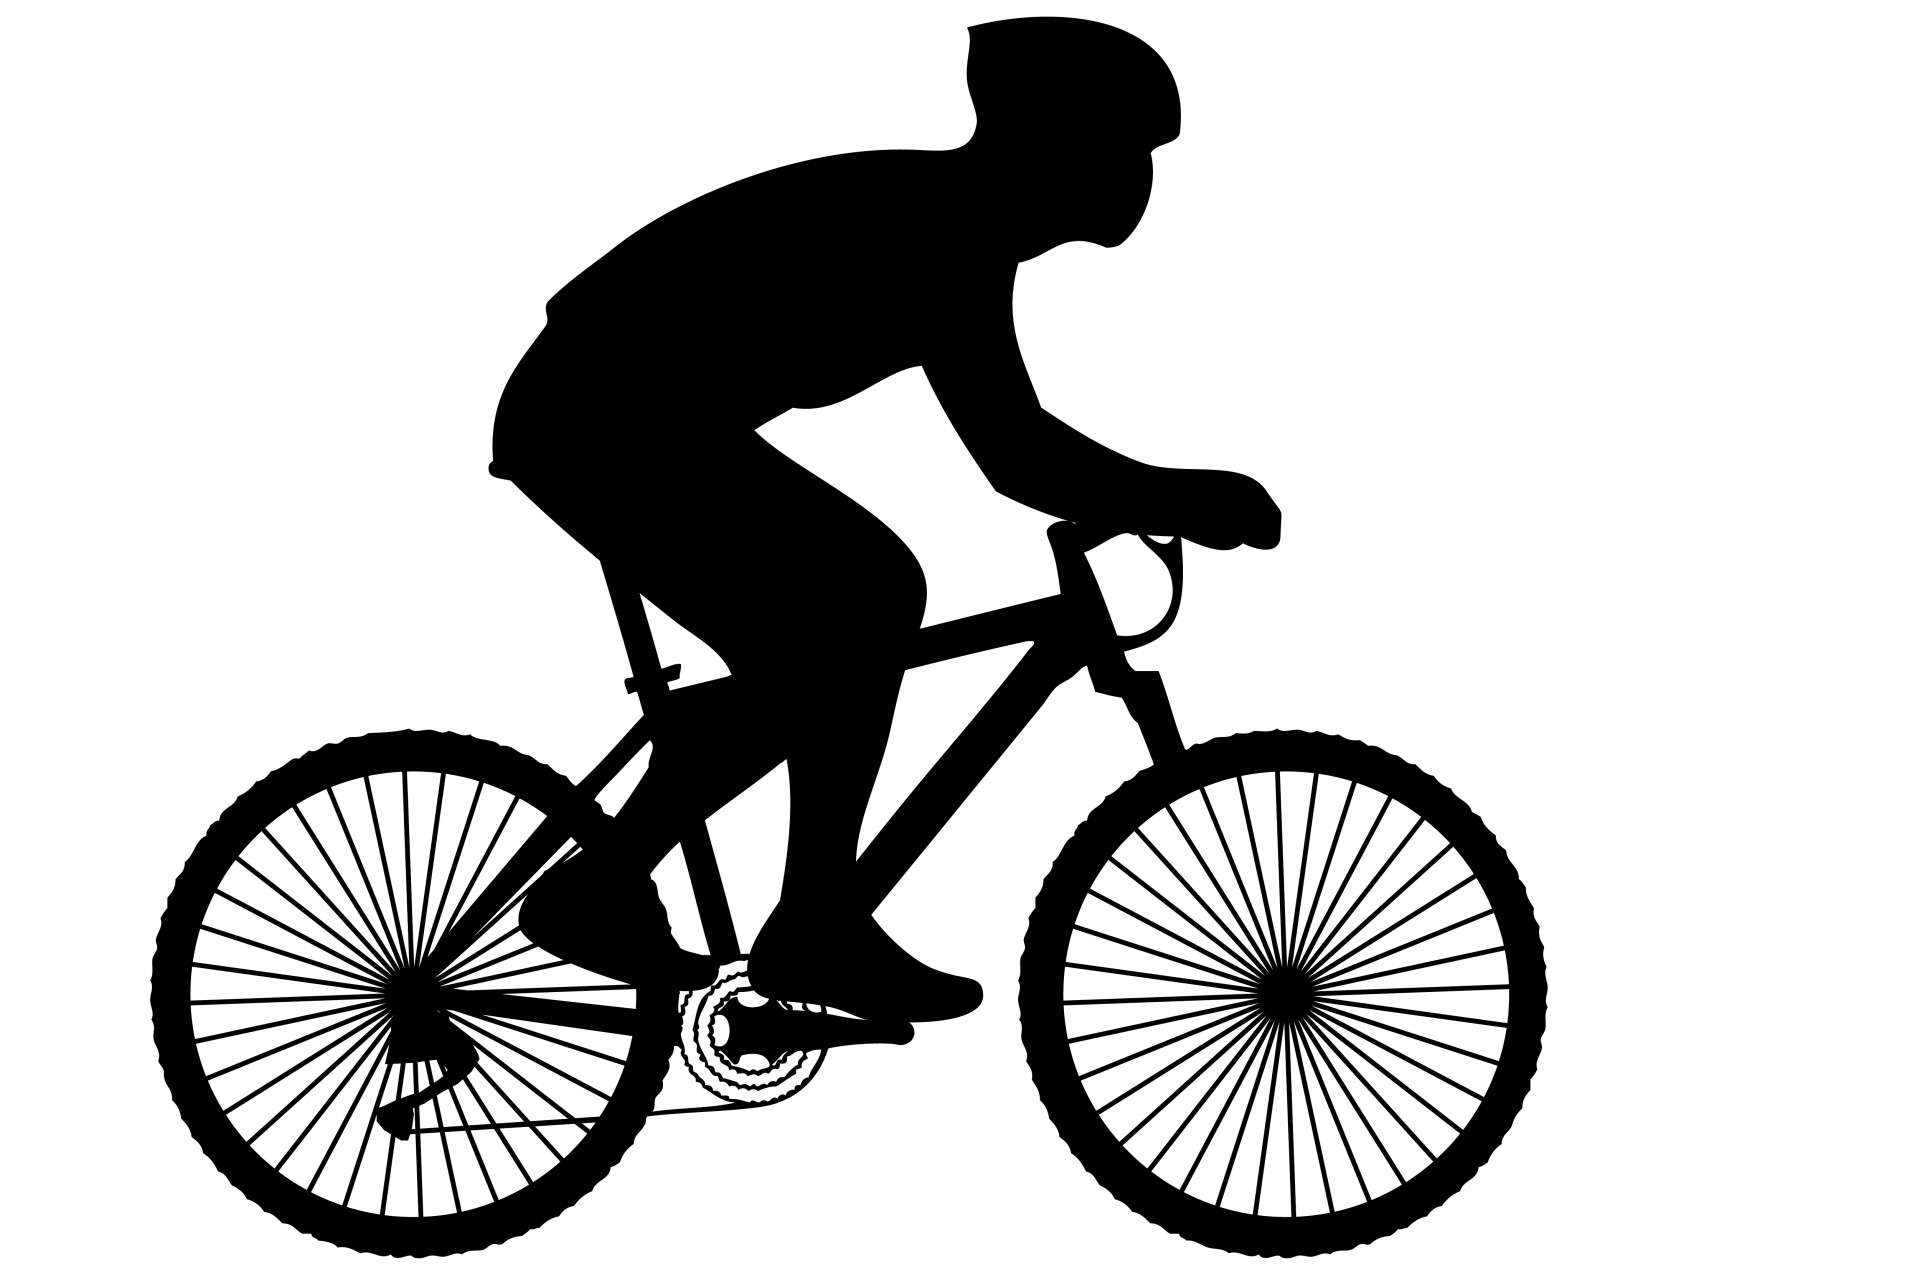 Free cycling clipart images. Cyclist cliparts download clip